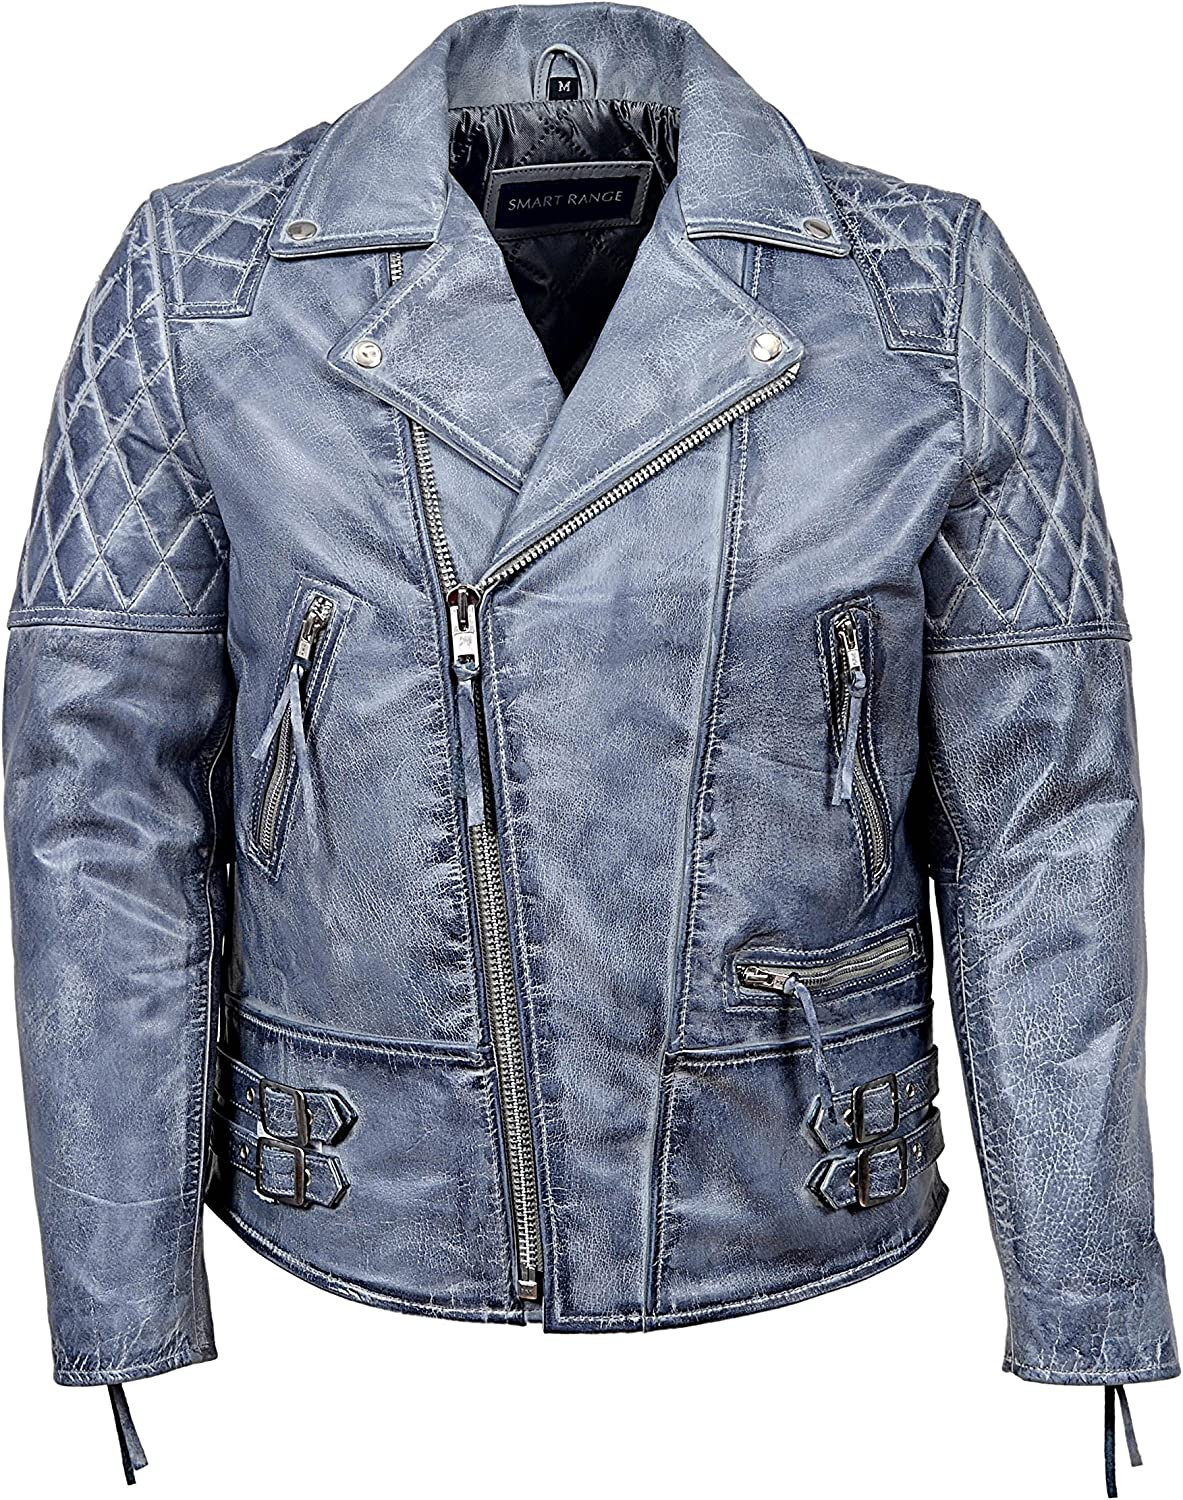 Smart Range 'Reckless' Men's Grey Stone Washed Biker Style Motorcycle Real Leather Jacket 233